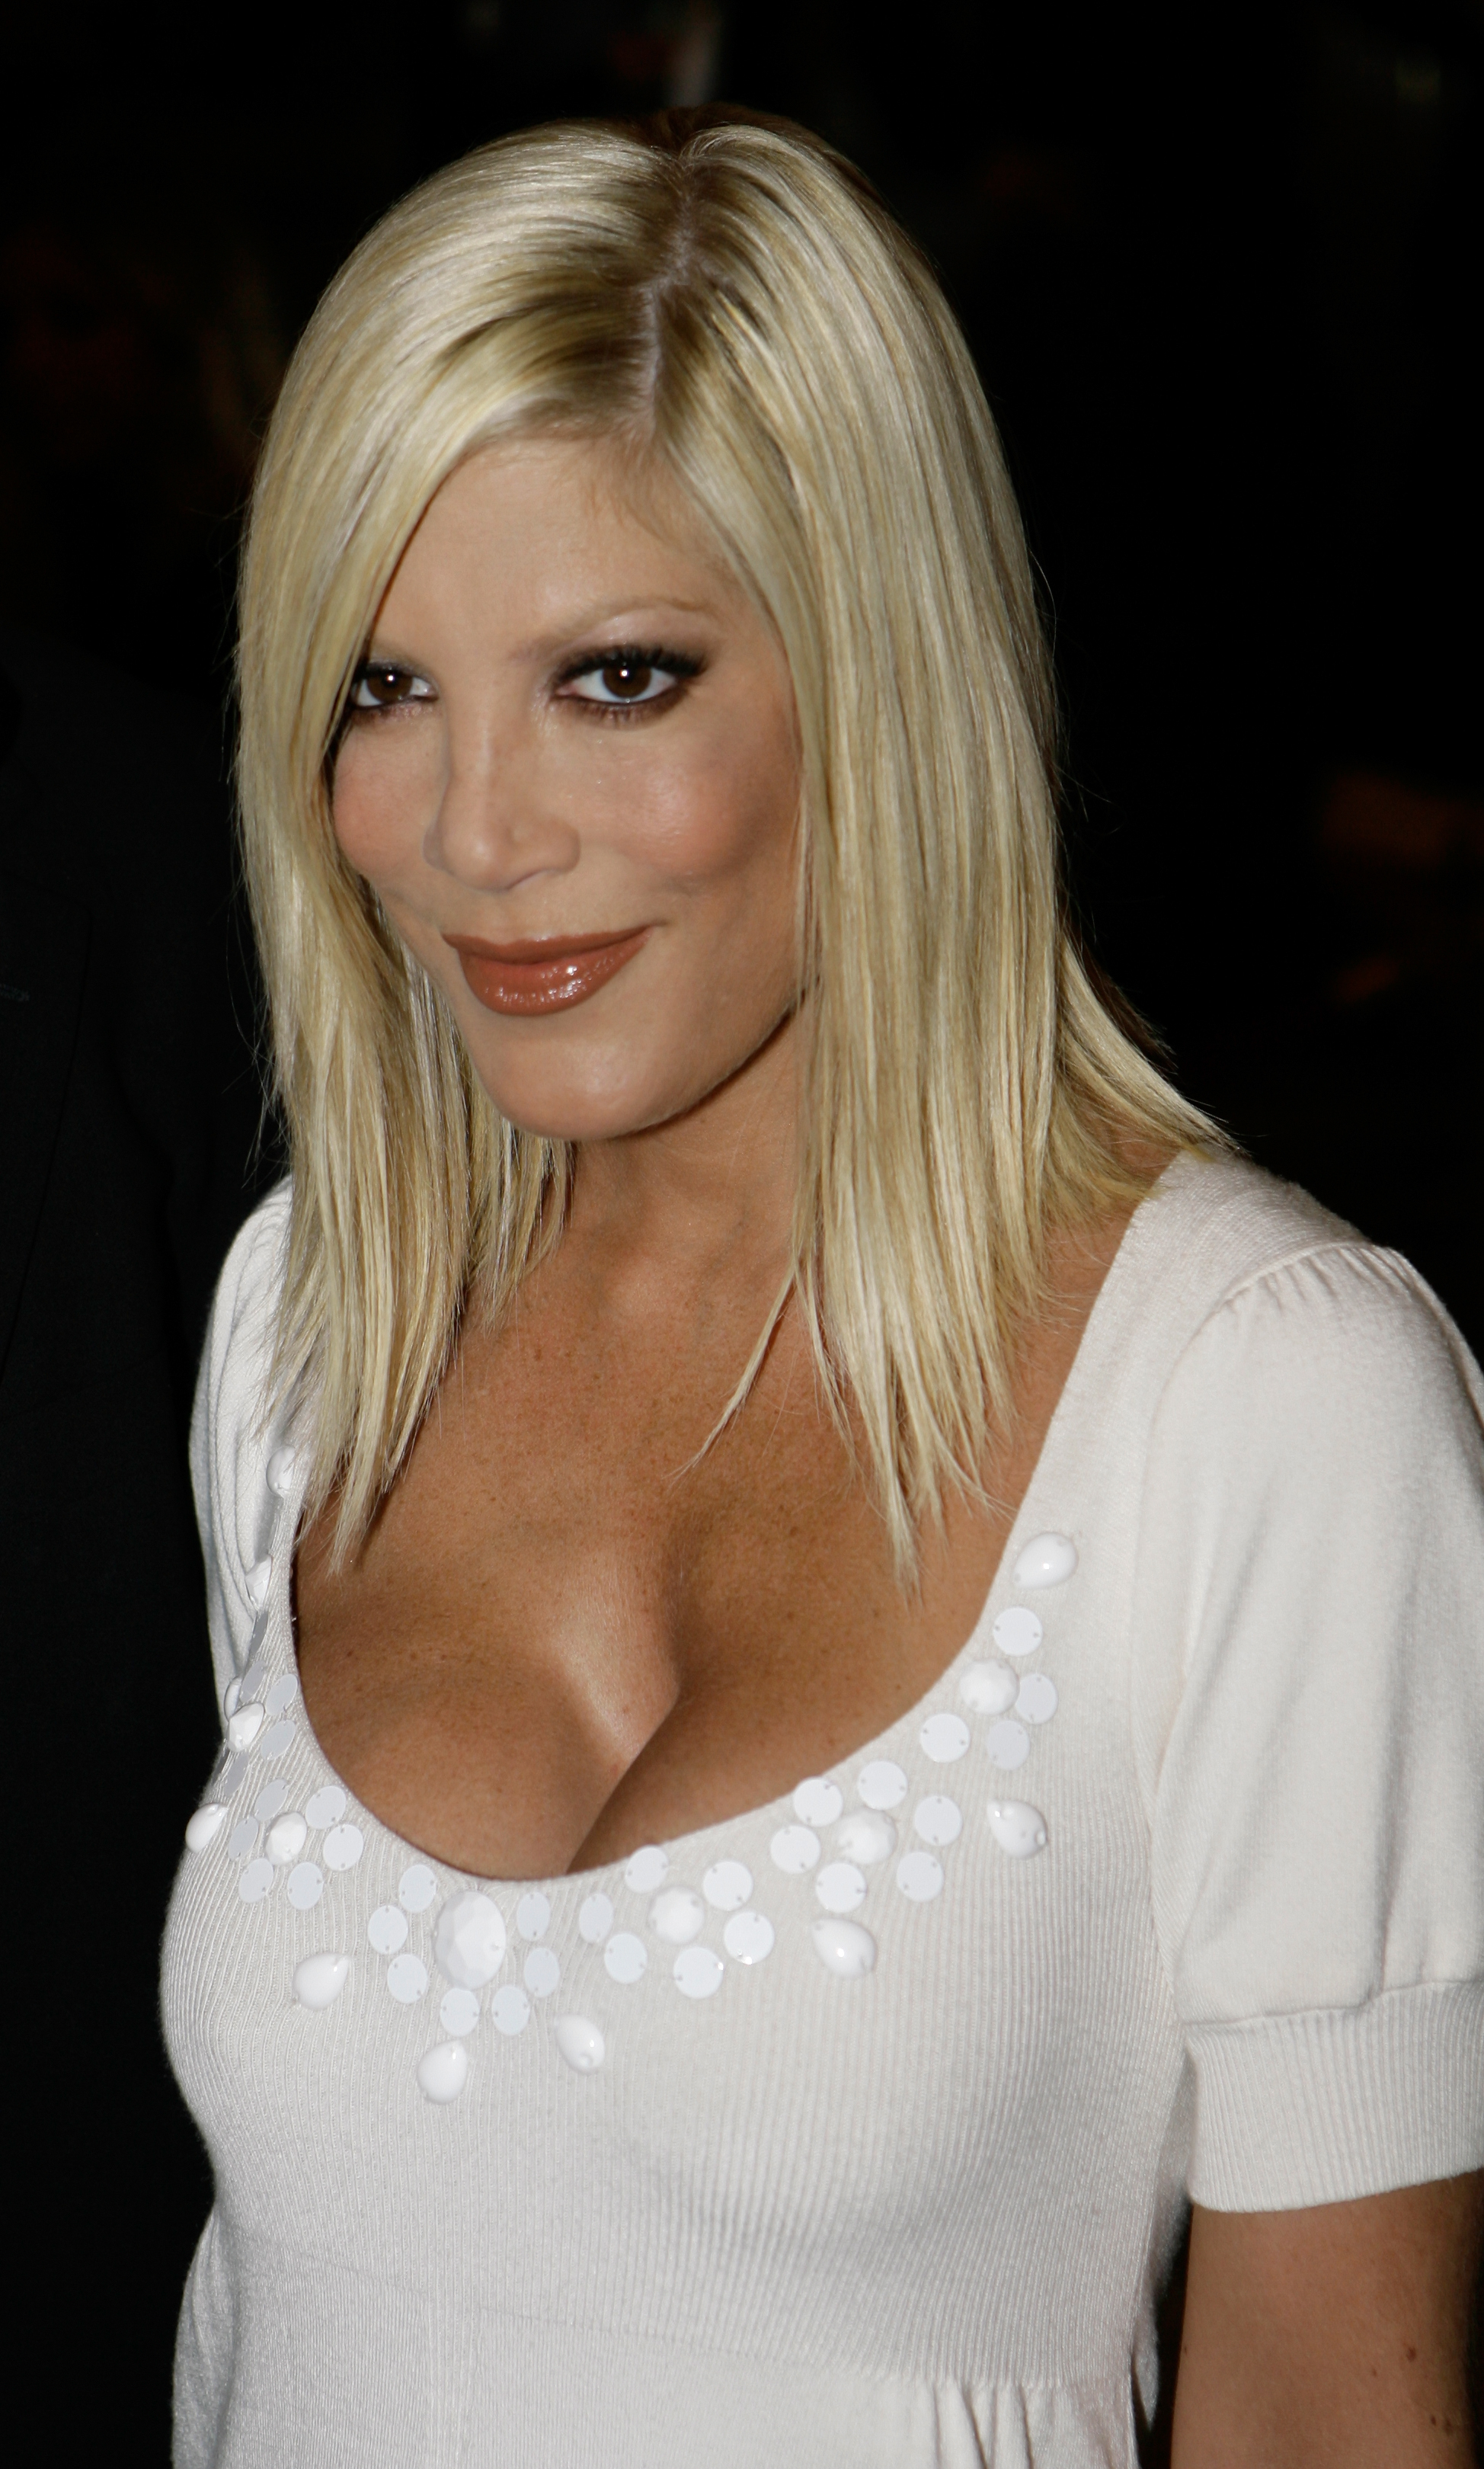 tori Spelling boob job before and after